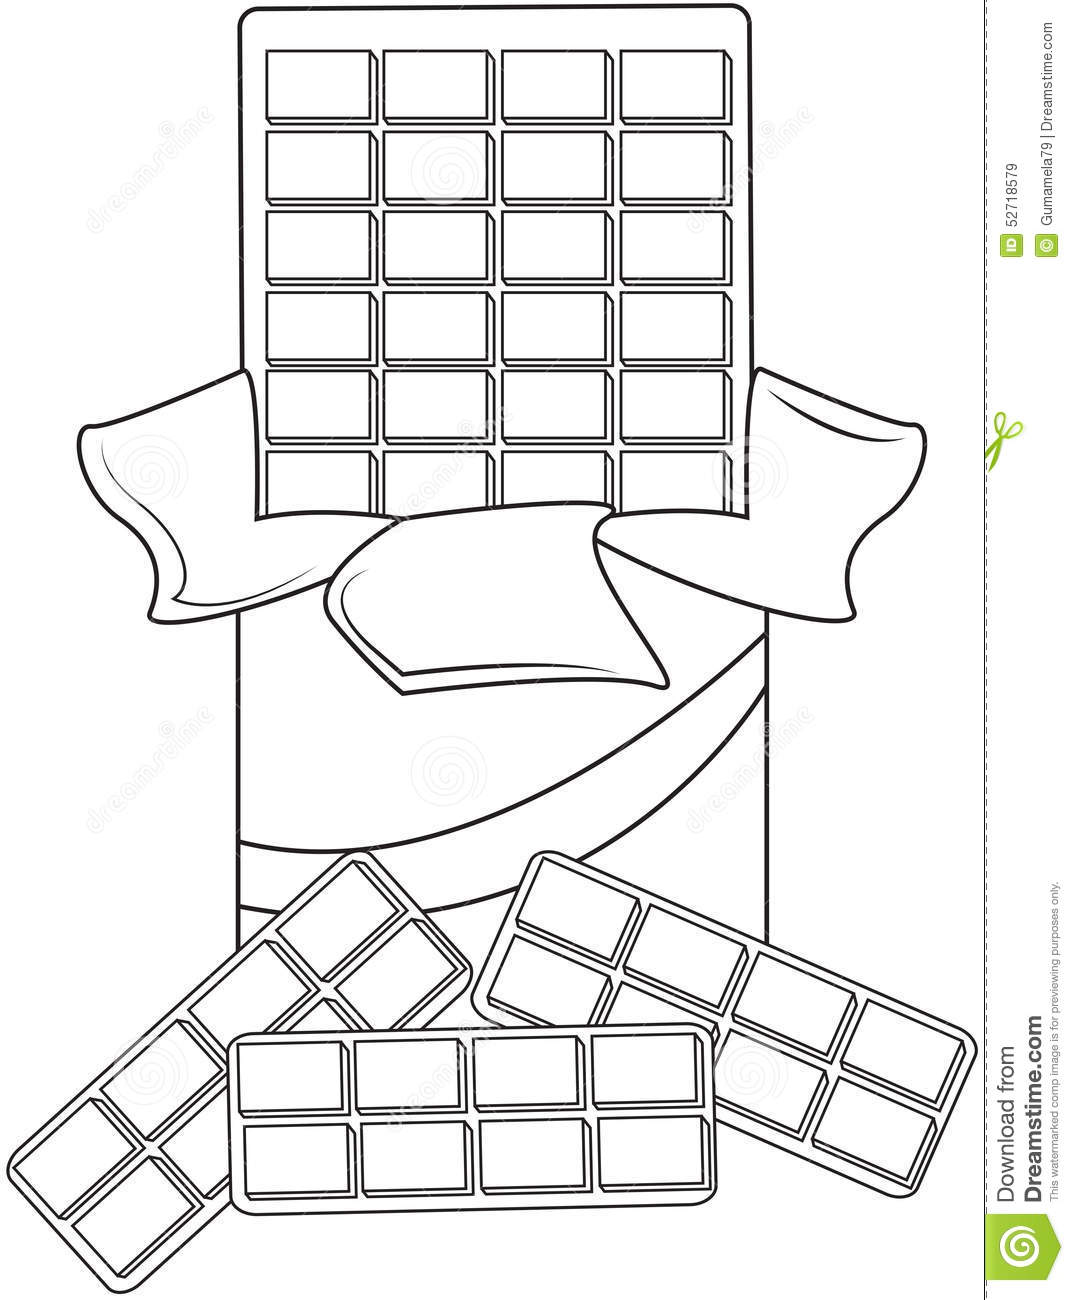 chocolate coloring pages Chocolate coloring page stock illustration. Illustration of  chocolate coloring pages